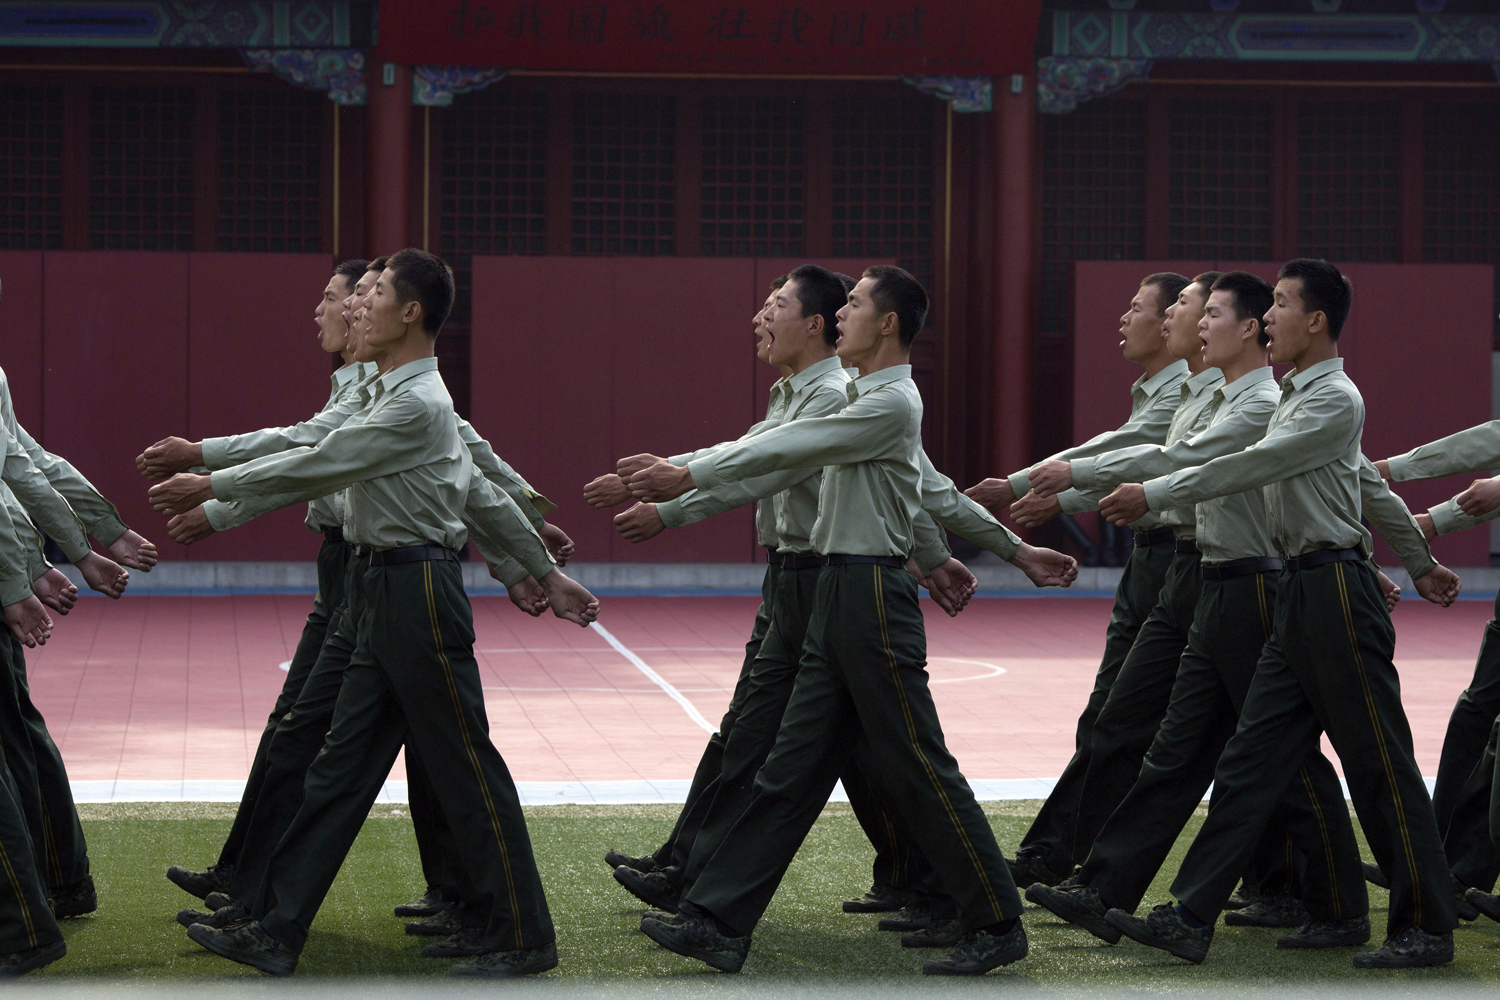 June 4, 2014.  Chinese paramilitary policemen chant slogans as they march at a barrack near Tiananmen Gate in Beijing, China.